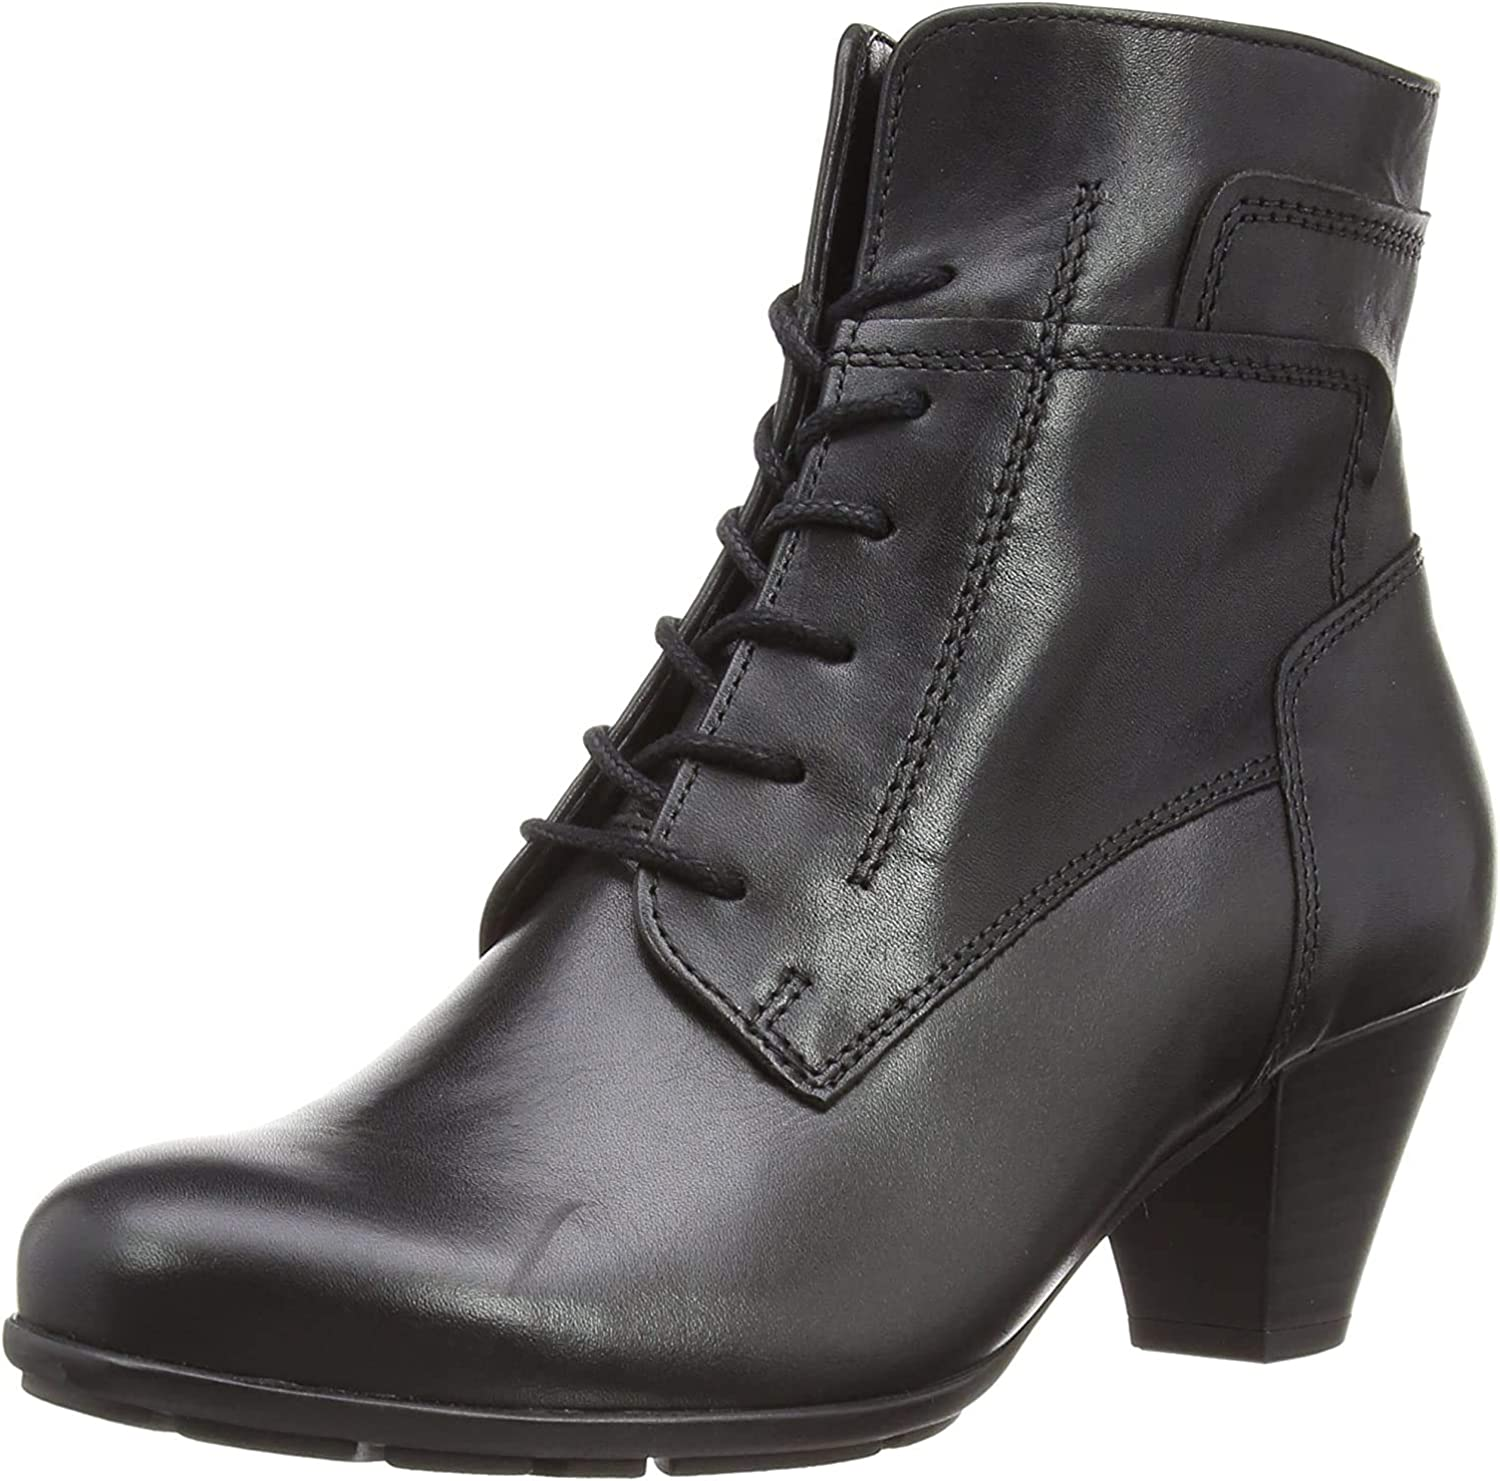 National Ladies Ankle Boots